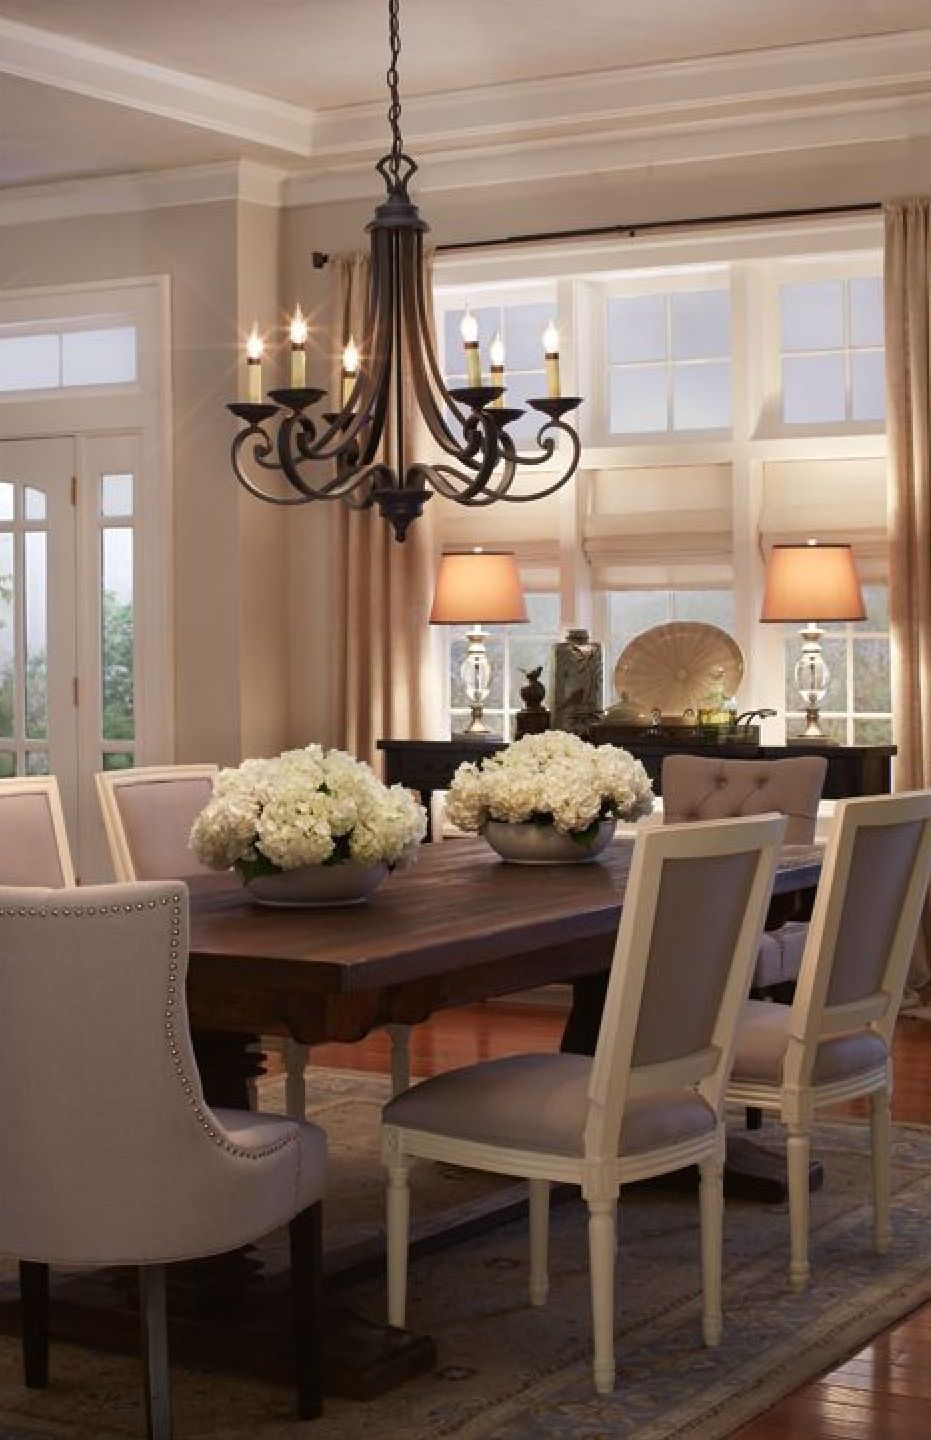 elegant furniture and lighting. Rectangle Formal Dining Room Table With Elegant Cushioned Chairs Furniture And Lighting G